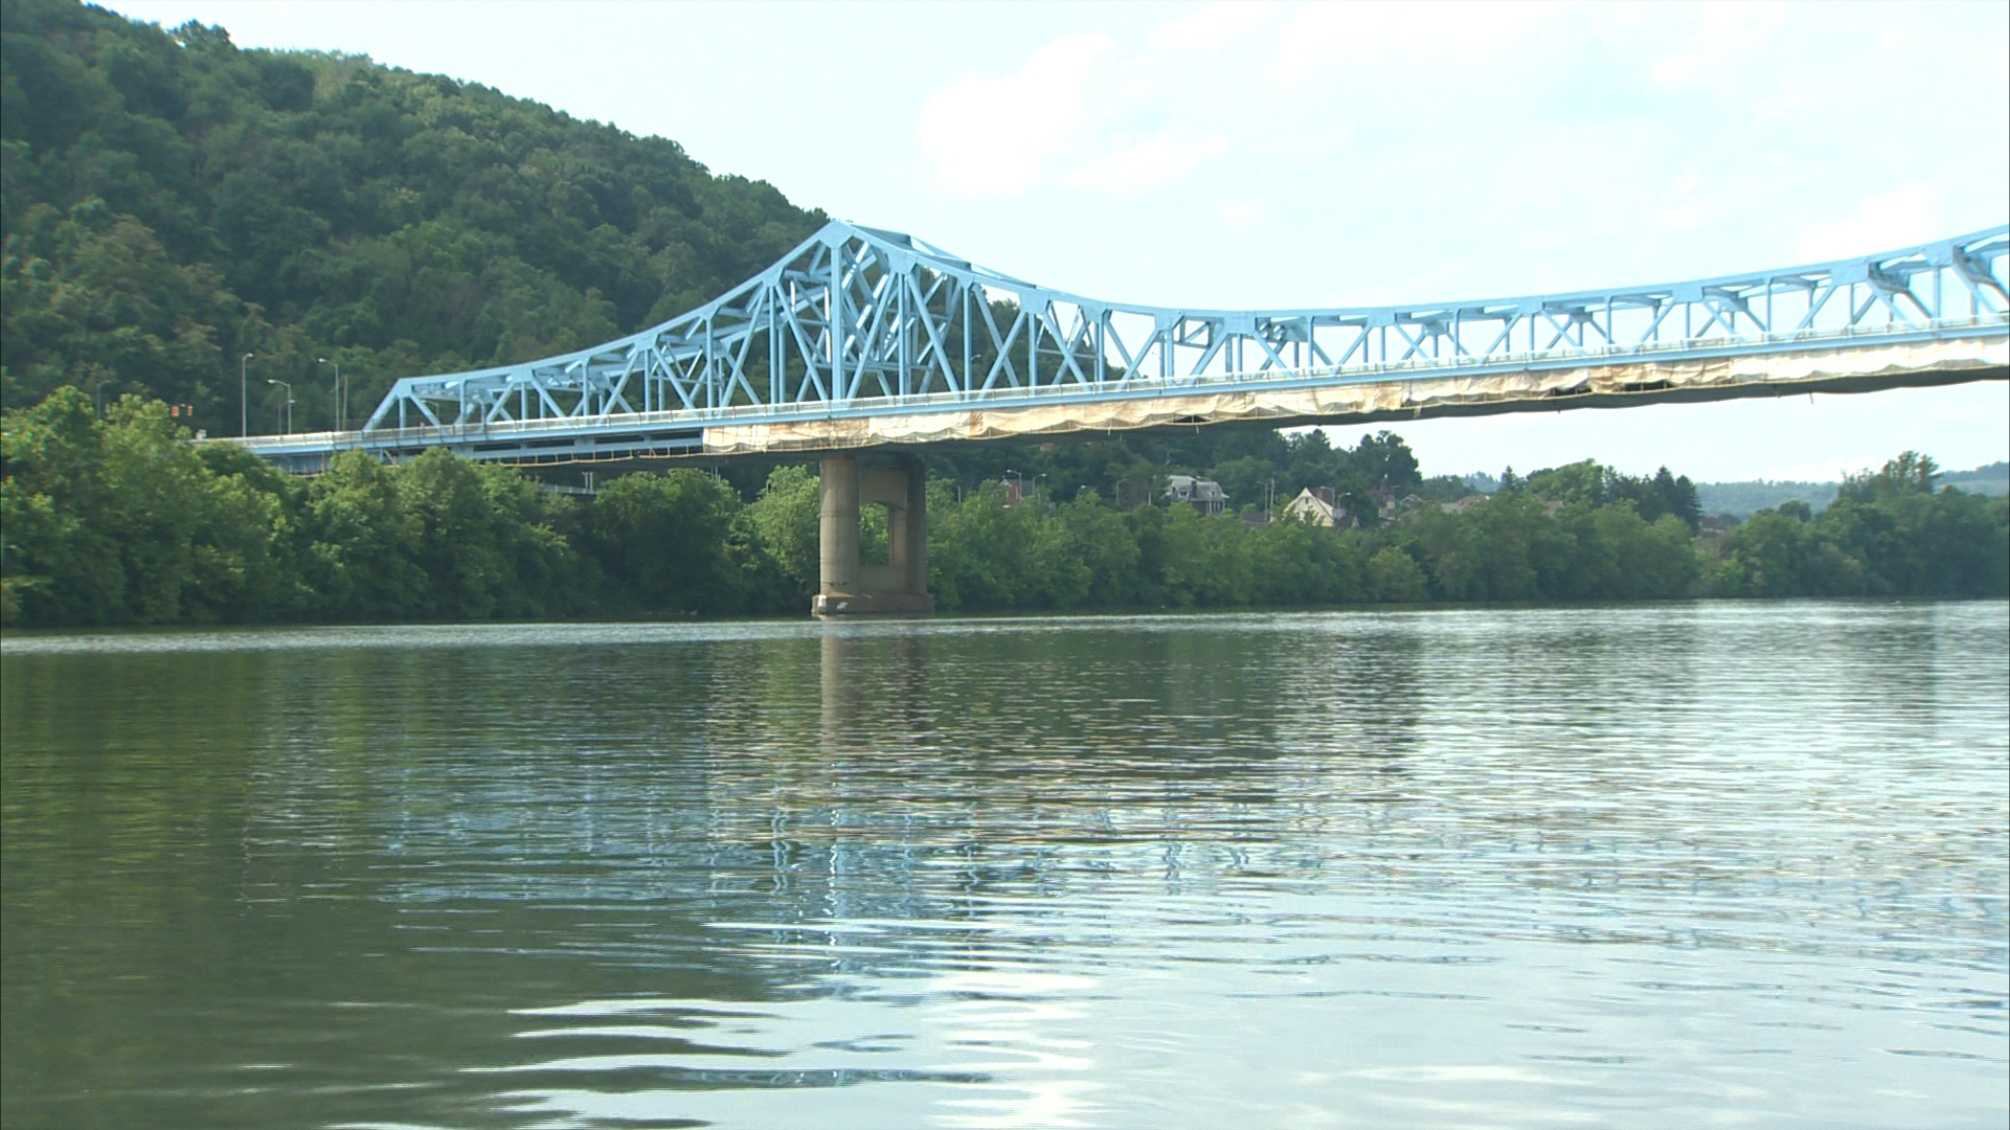 The Mansfield Bridge, also known as the Dravosburg Bridge, carries traffic over the Monongahela River between McKeesport and Dravosburg.